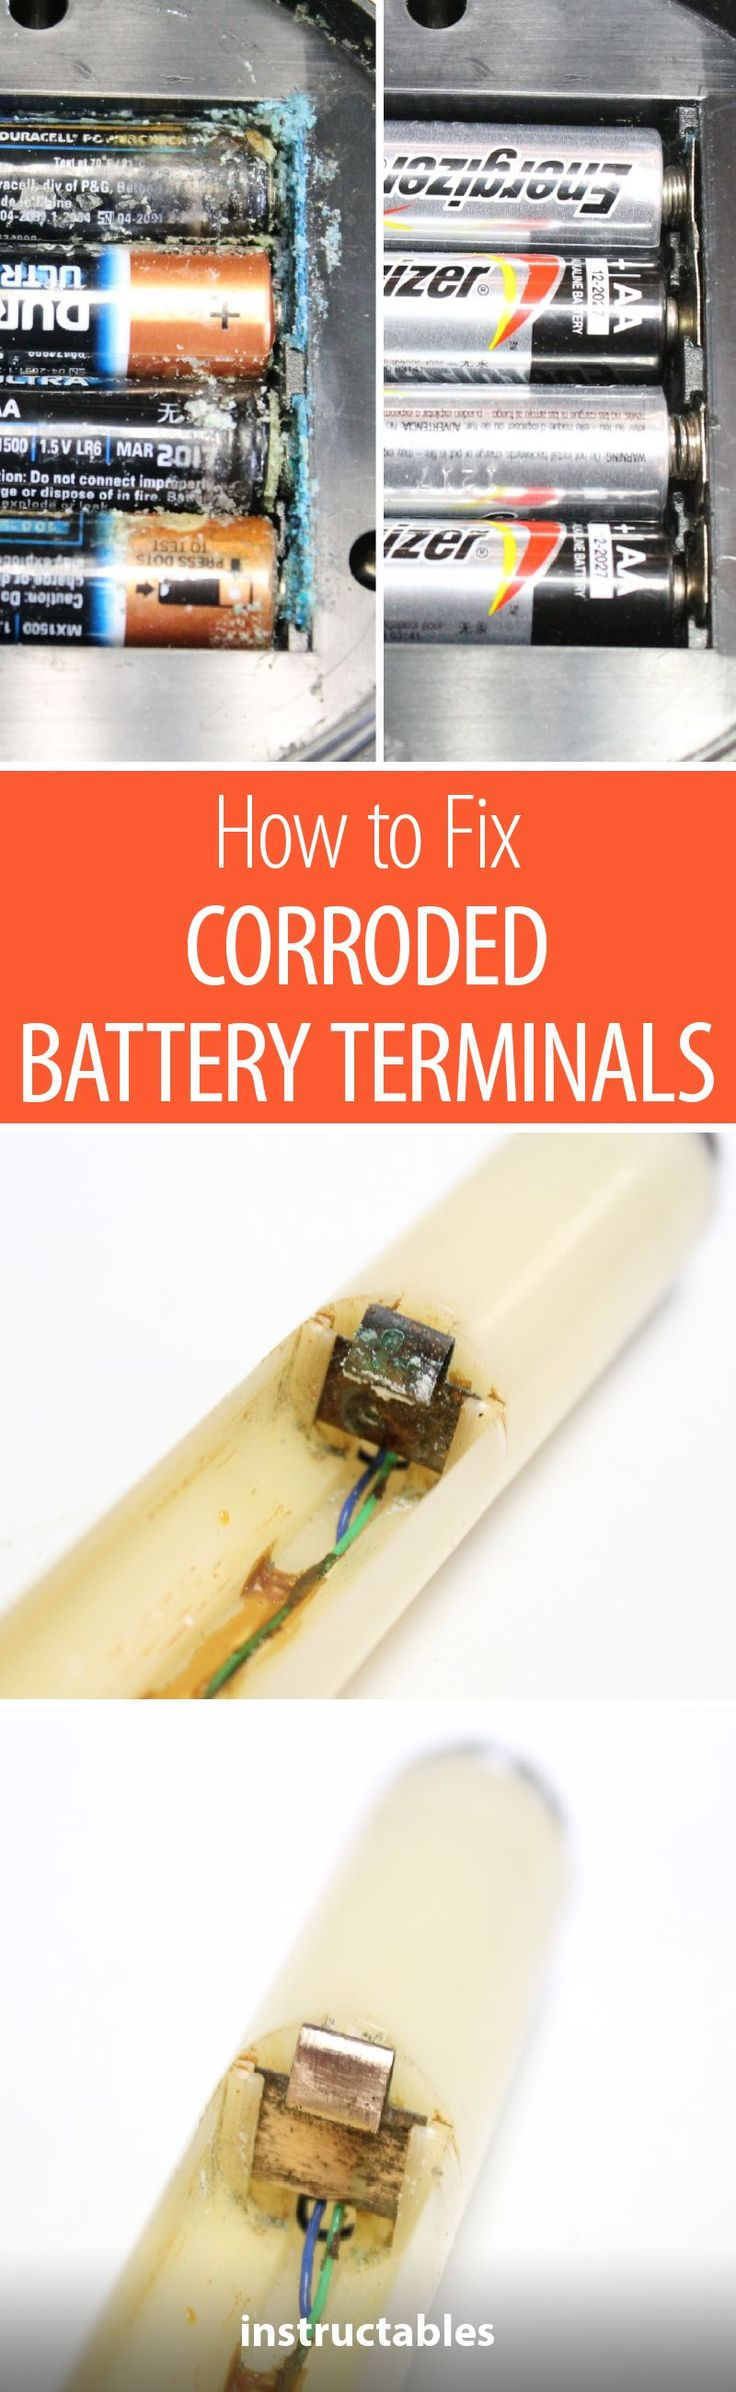 How to Fix Corroded Battery Terminals Fix it, Diy